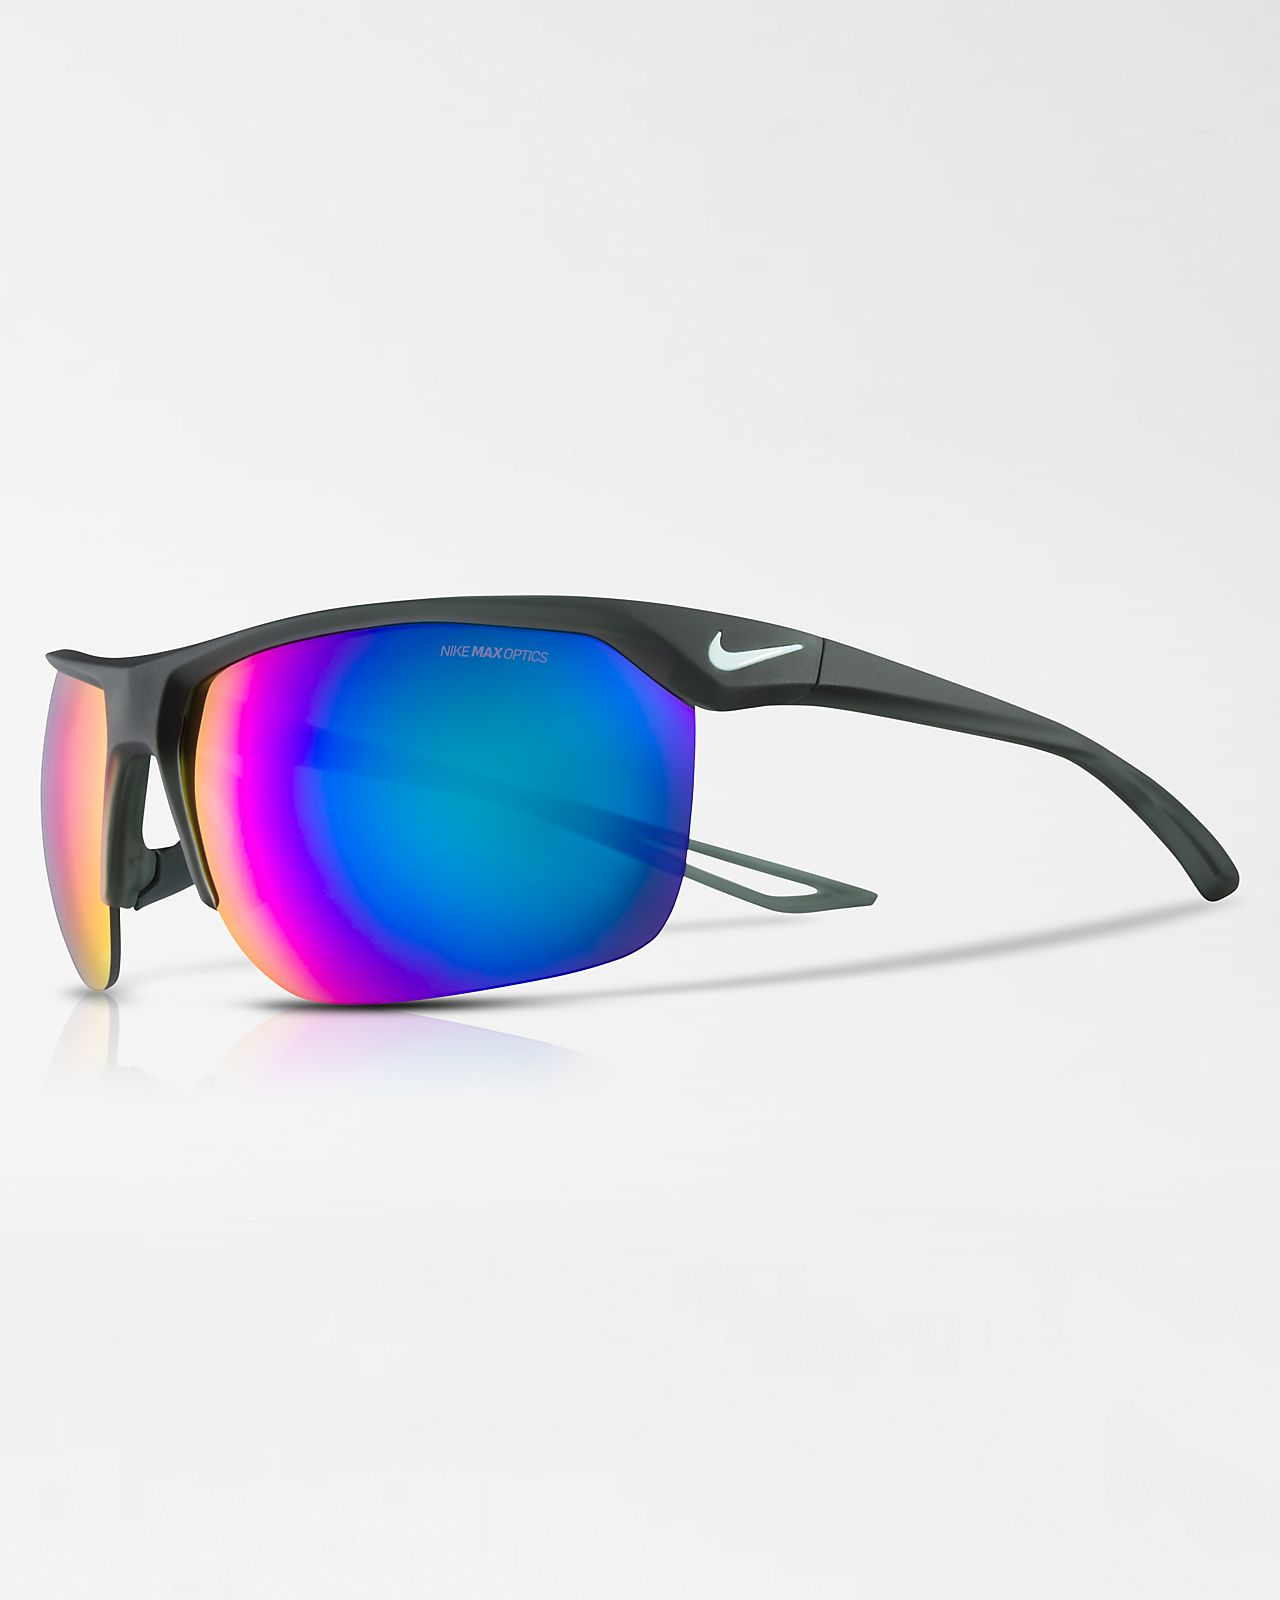 51c954a30a3b Low Resolution Nike Trainer Mirrored Sunglasses Nike Trainer Mirrored  Sunglasses